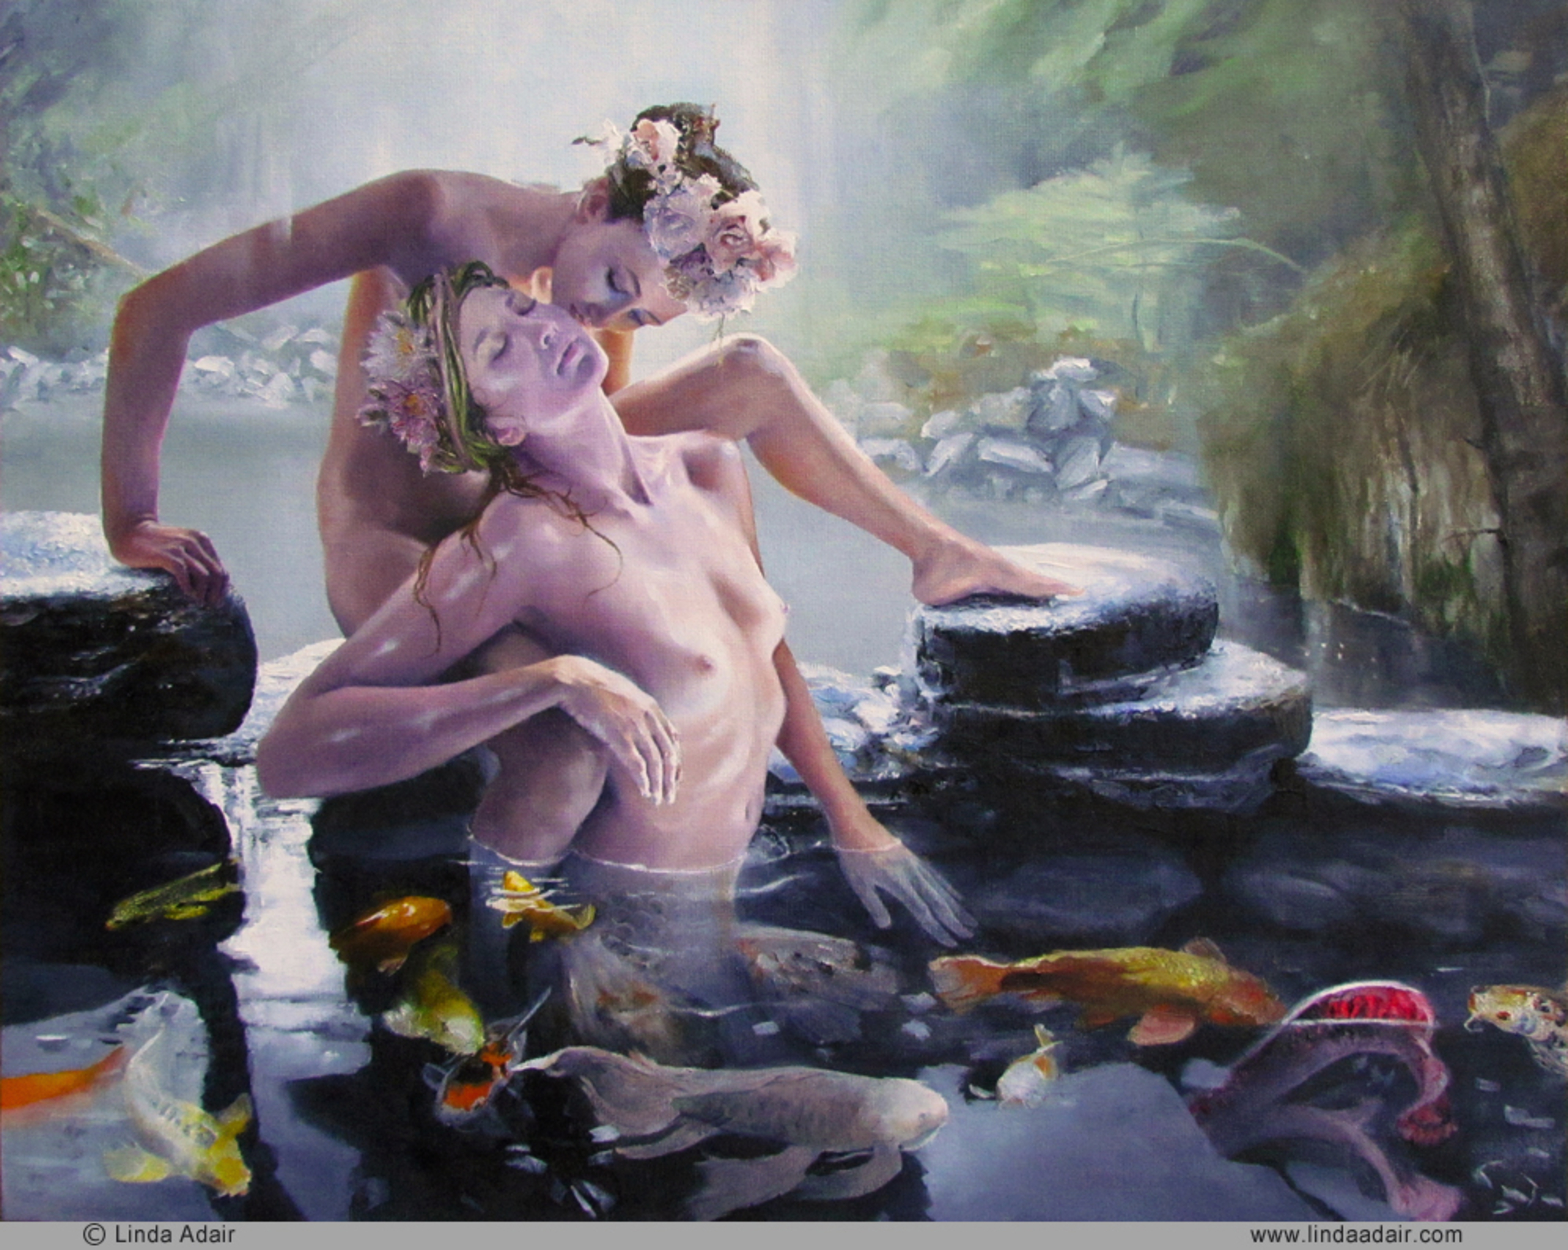 Siren and the Maiden Artwork by Linda Adair